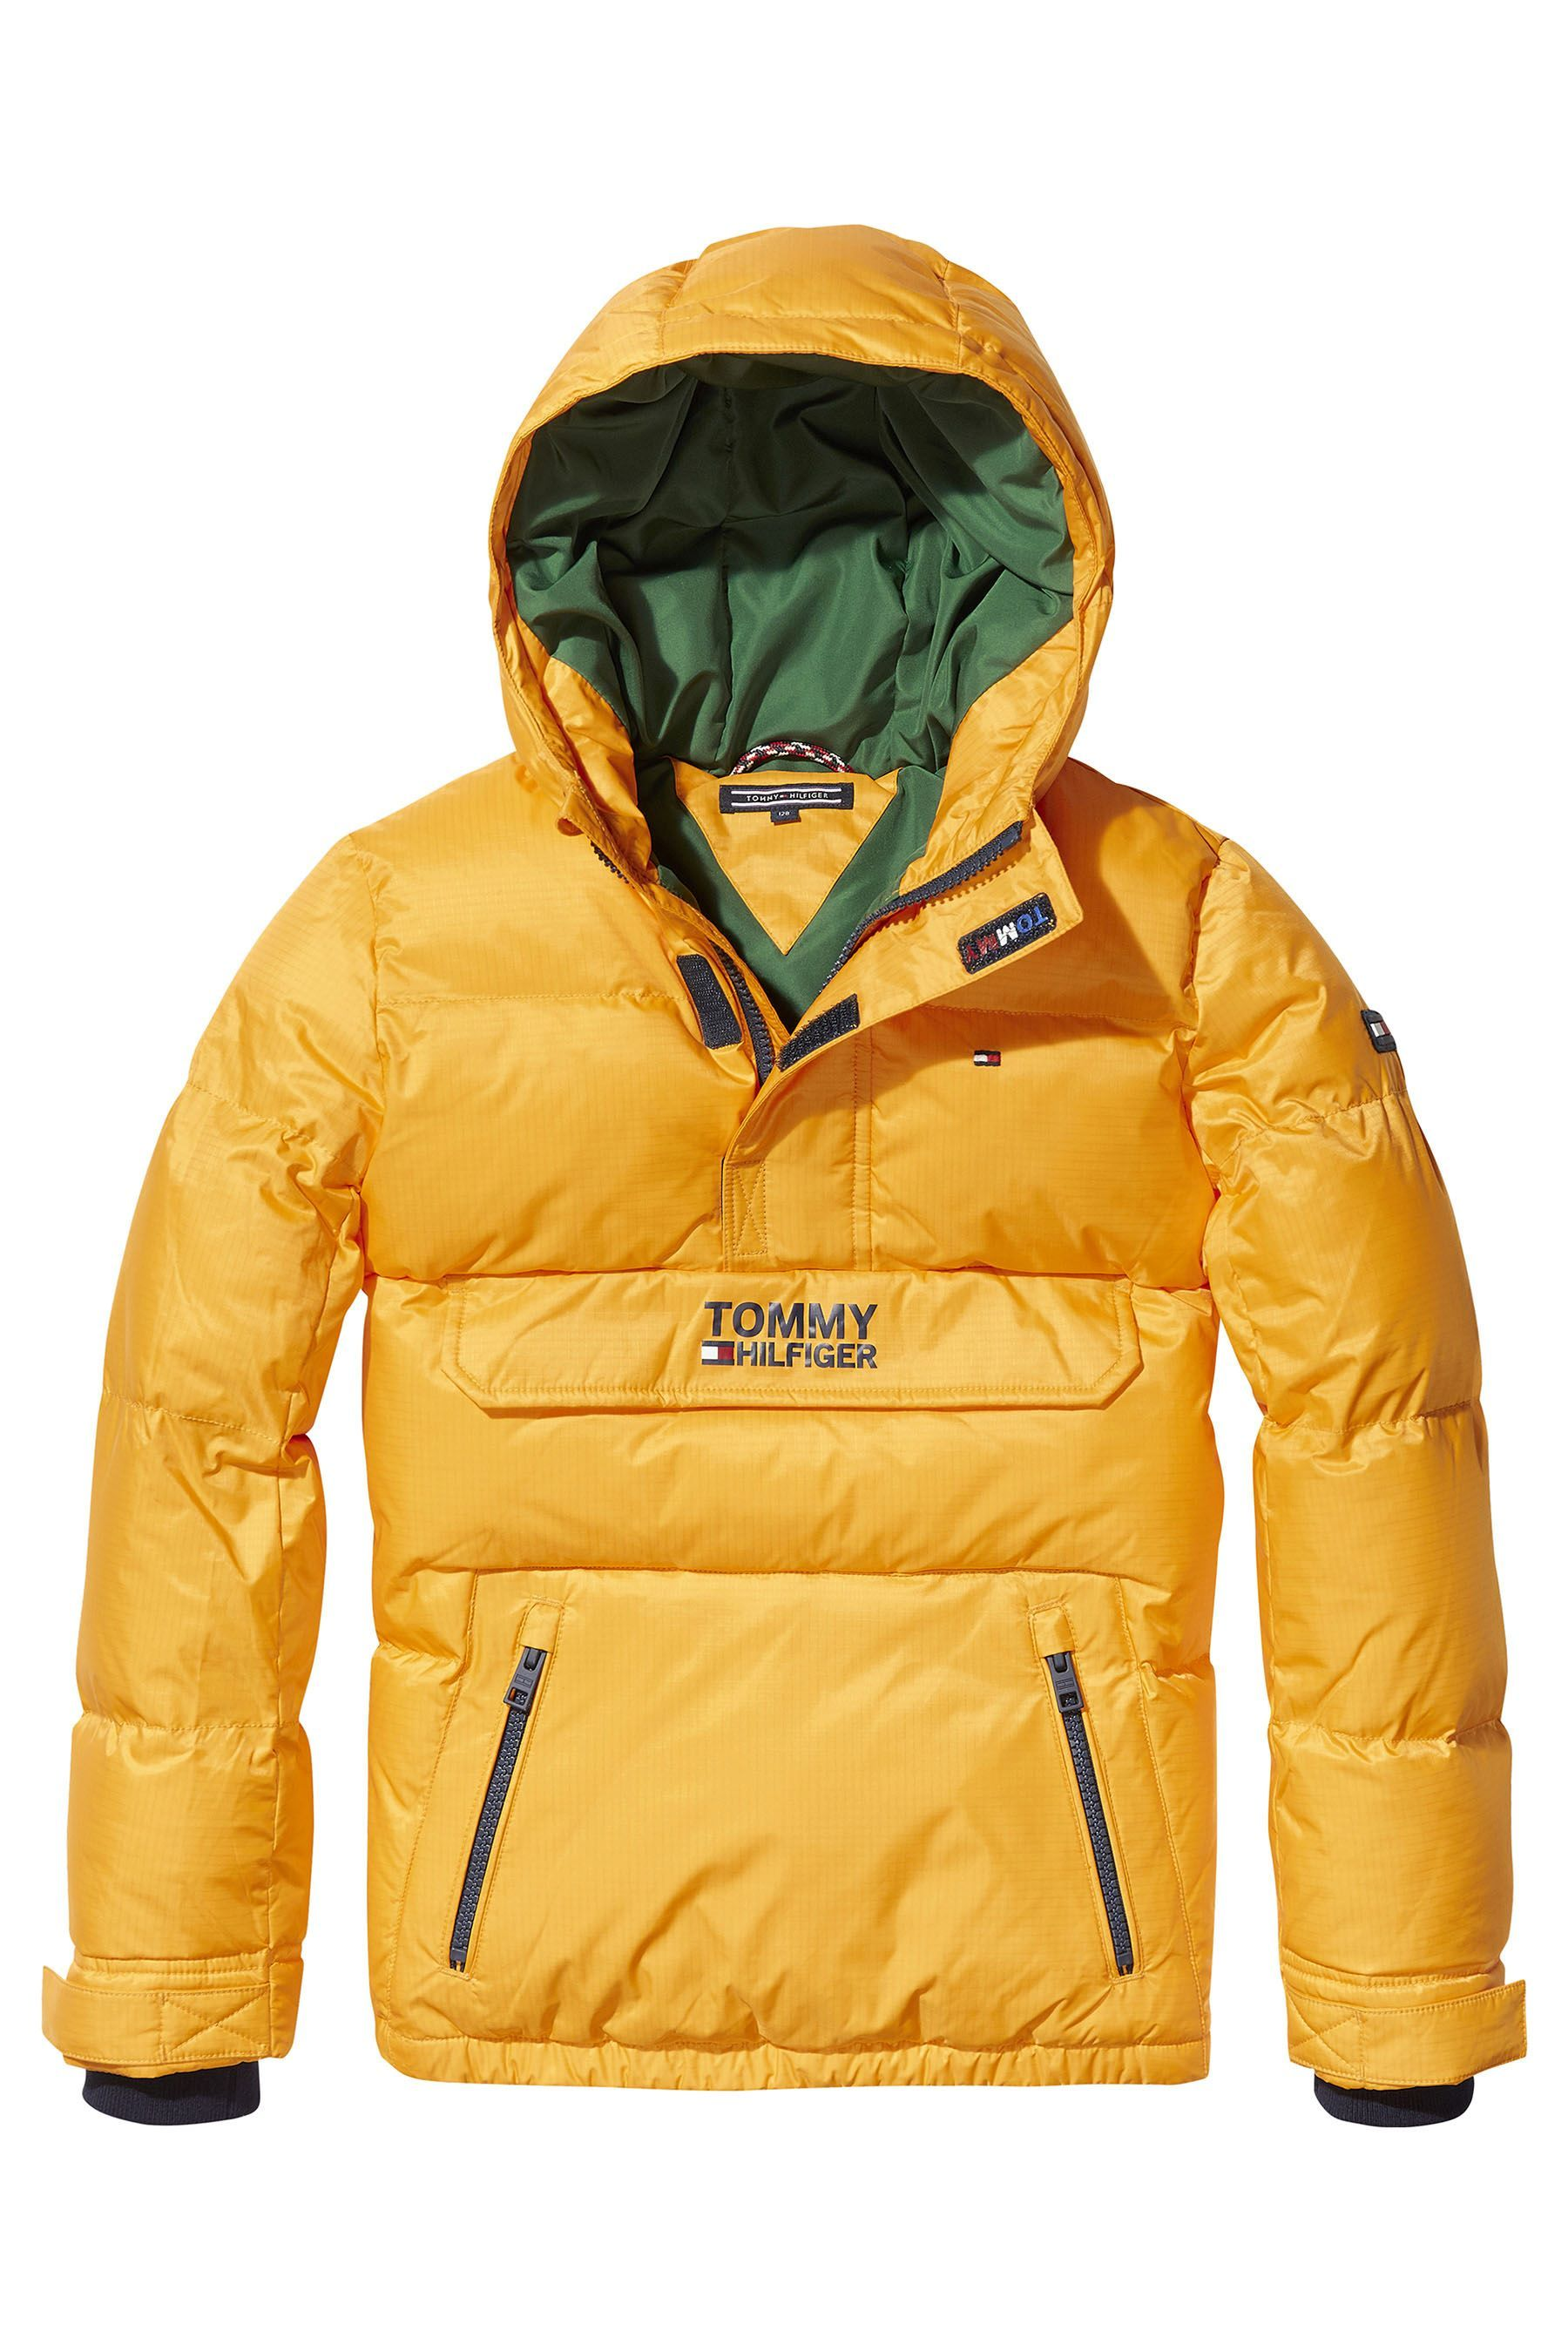 04ee04a407e2d Boys Tommy Hilfiger Yellow Pop Over Padded Jacket - Yellow ...